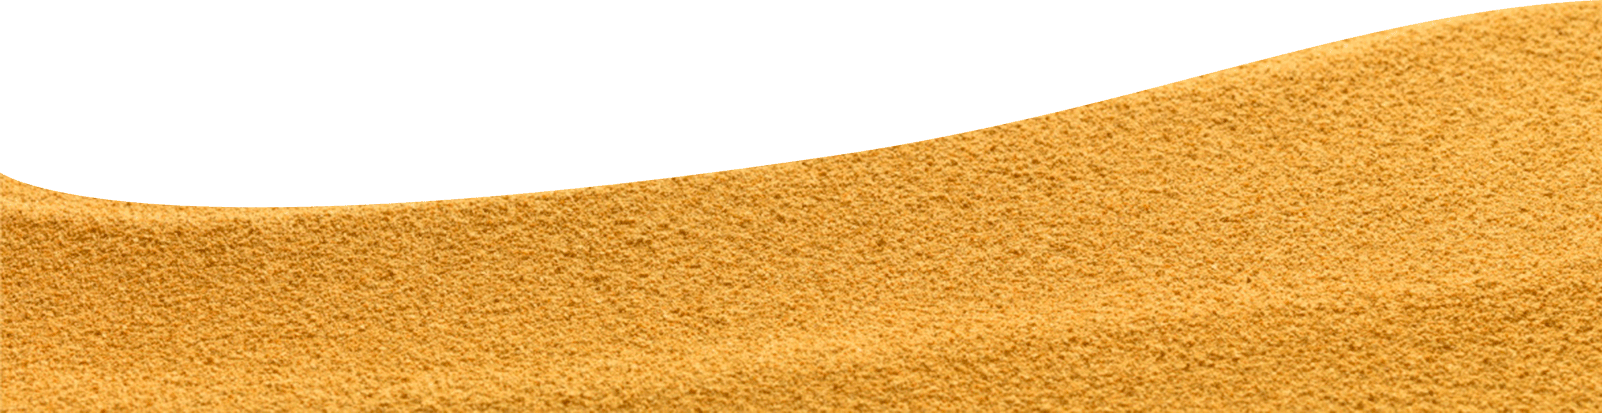 Png images free download. Transparent sand svg royalty free stock